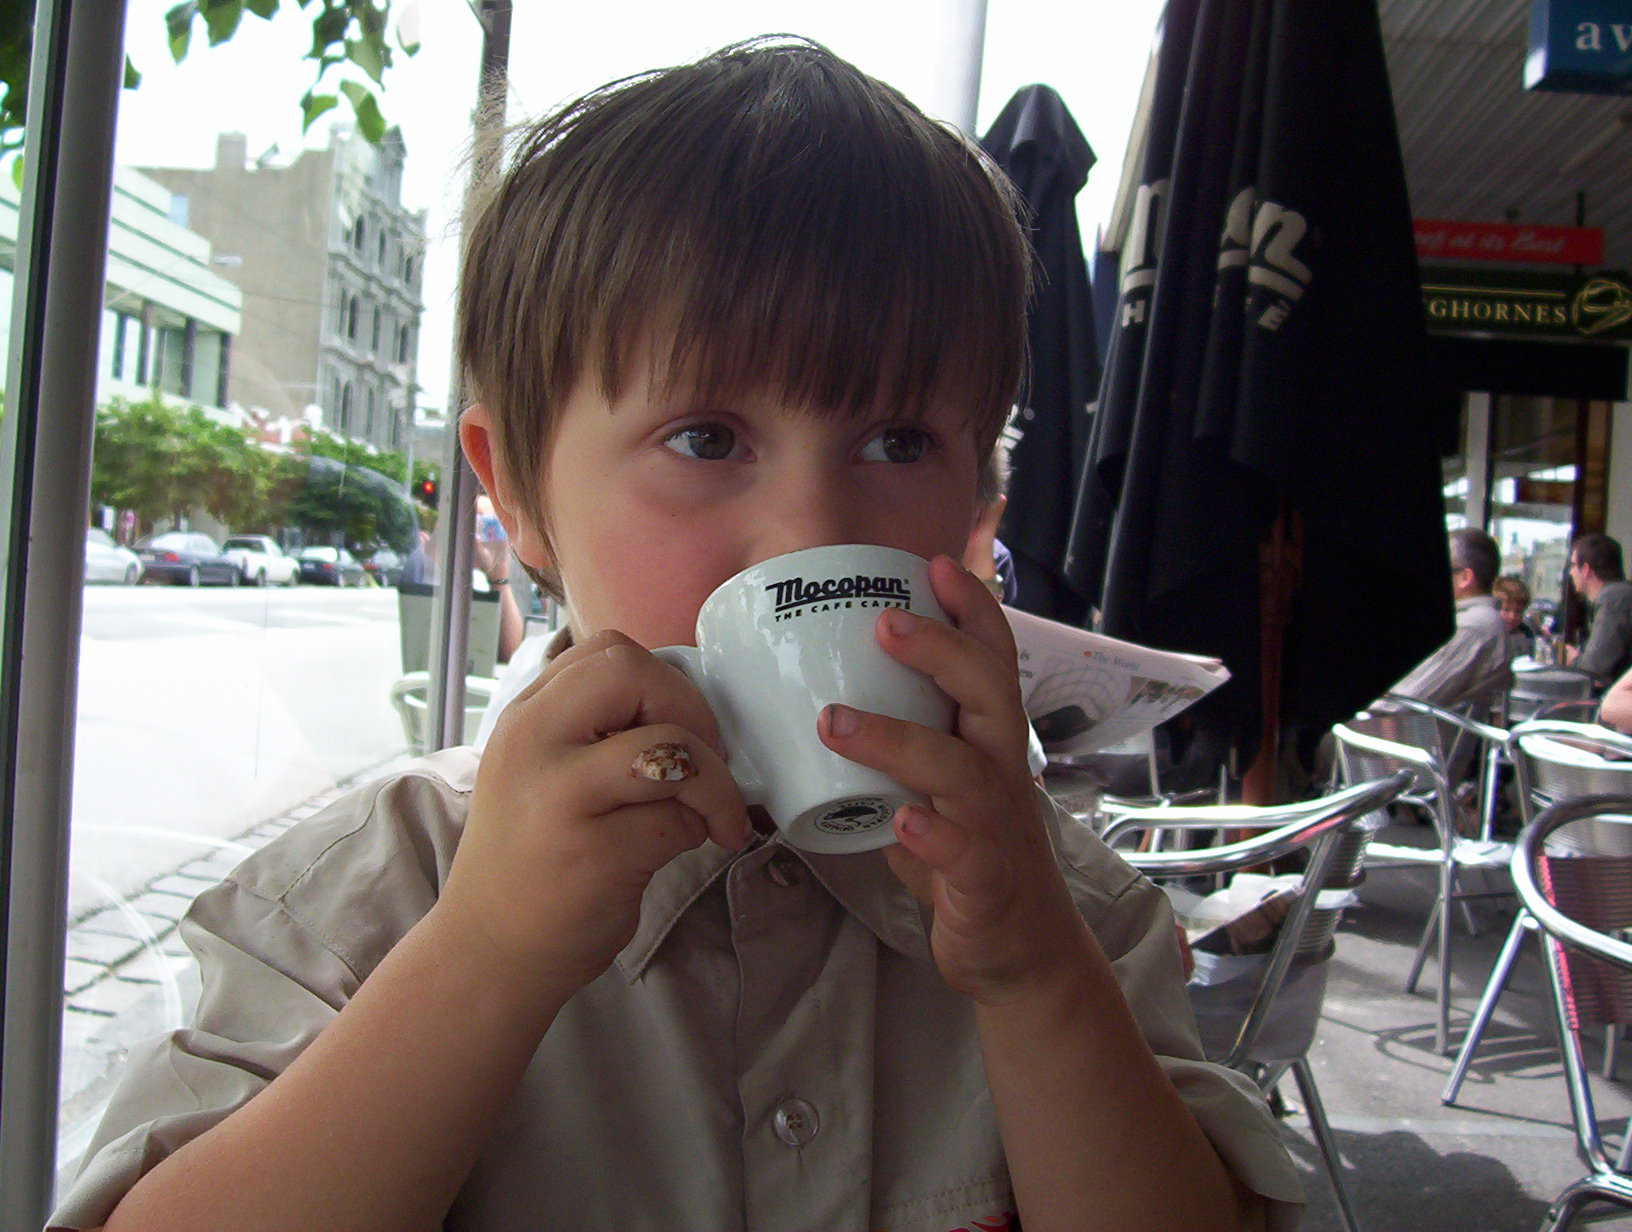 'What's with the BABYCINO? Why do kids have to pretend to drink coffee?'